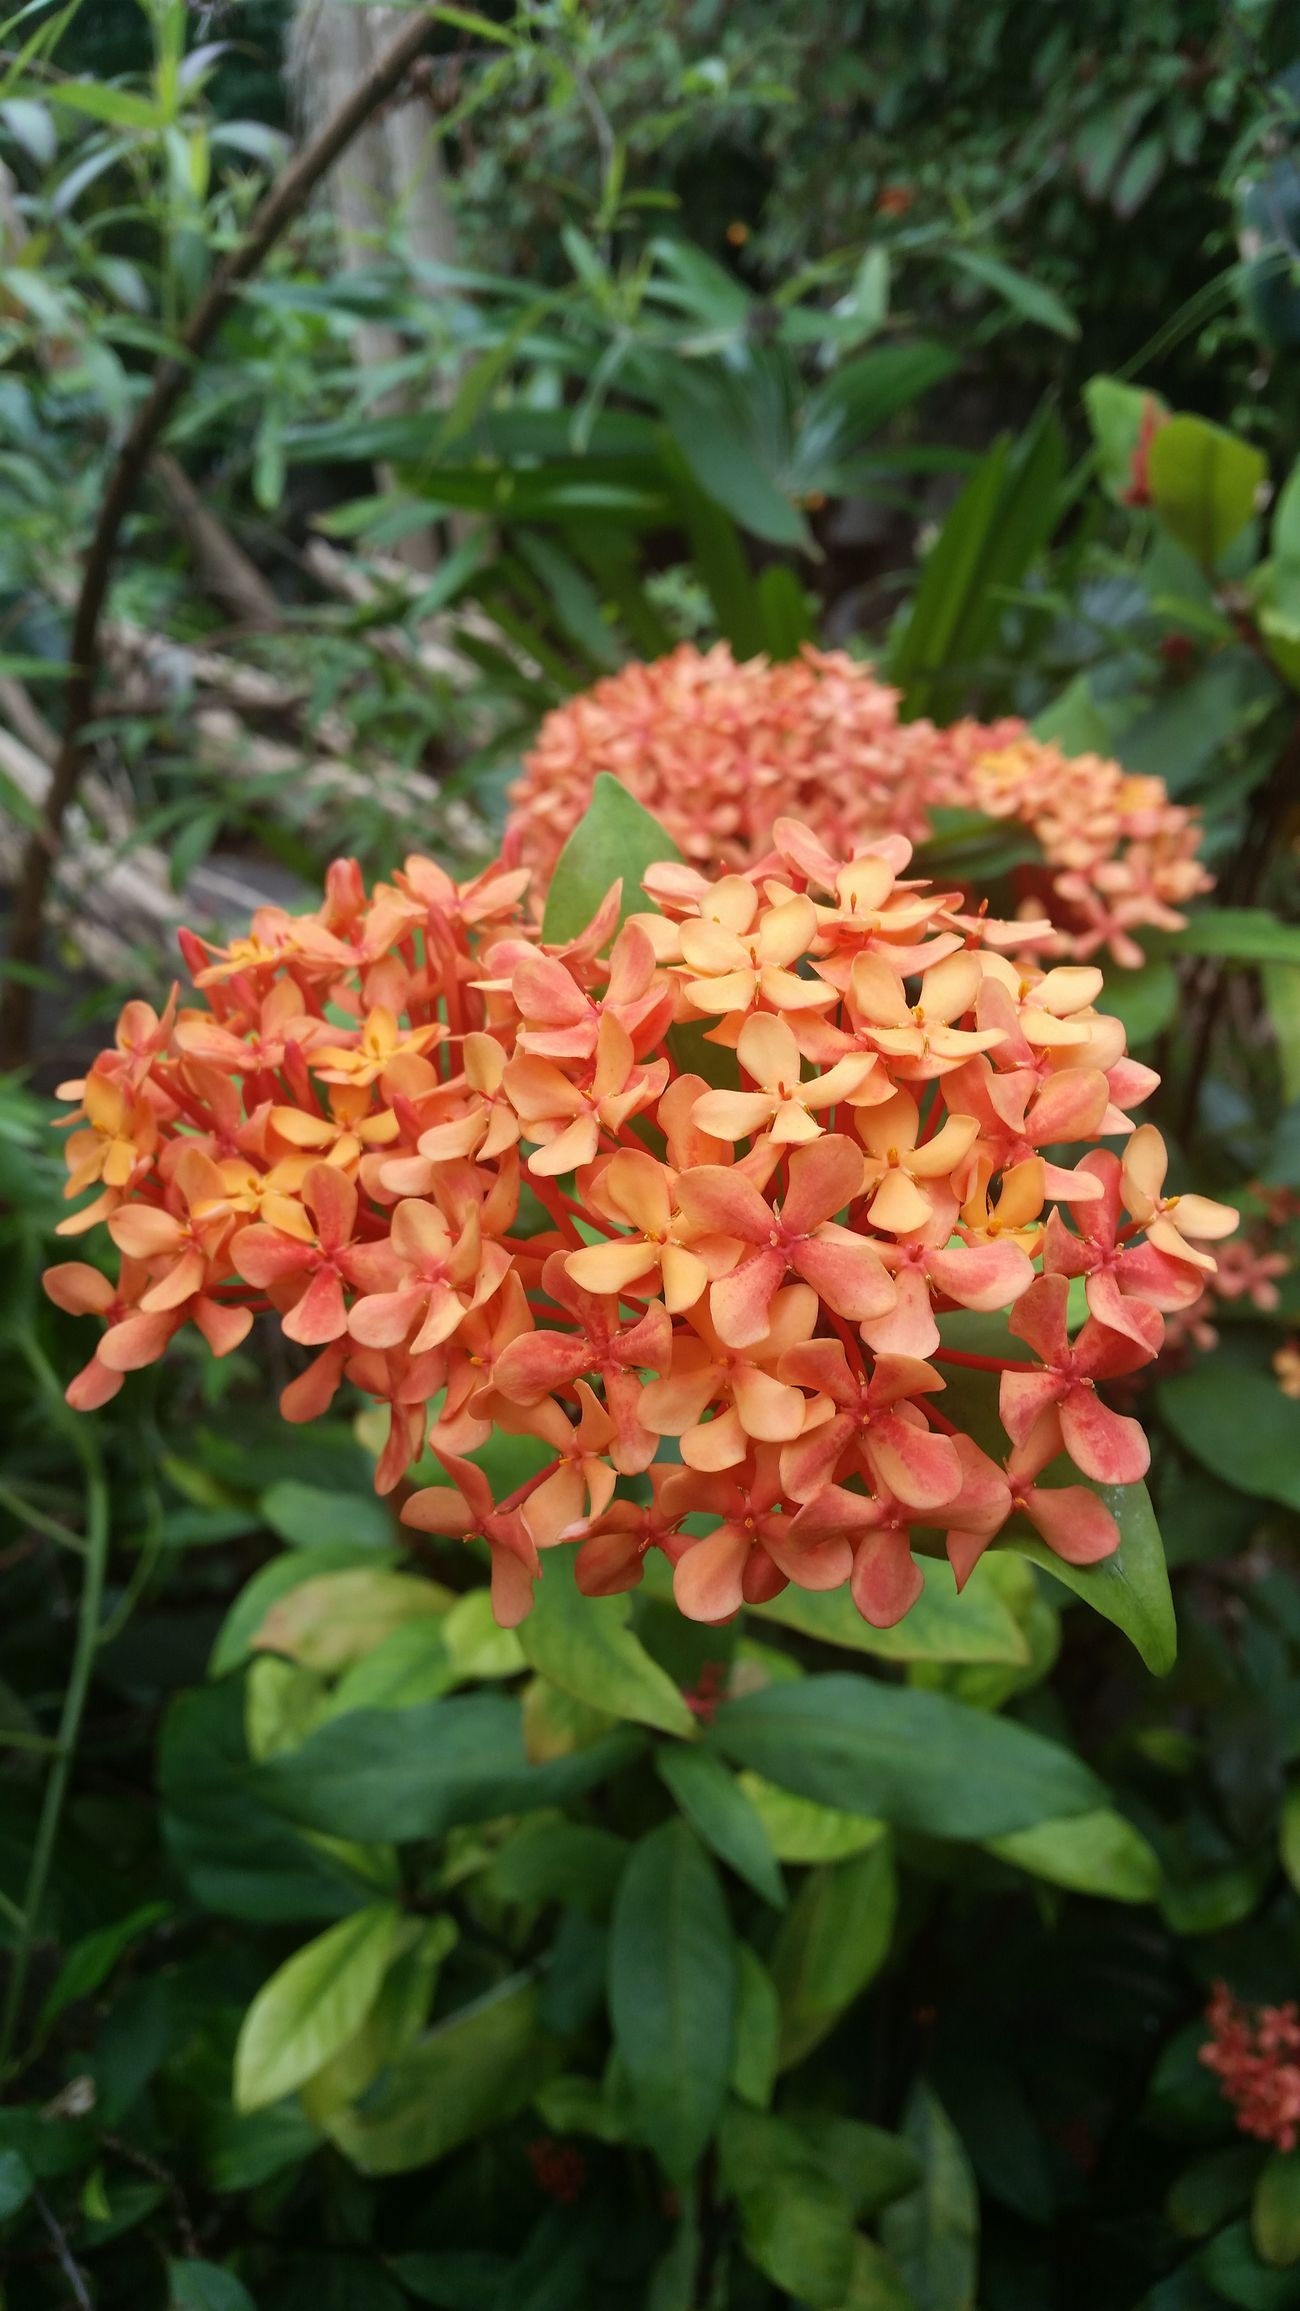 Outdoors Having Fun Makesmesmile Enjoying Life Good Life Happy Nature Perspective Close Up Nature Beauty In Nature Butterfly Garden Orange Orange Flower